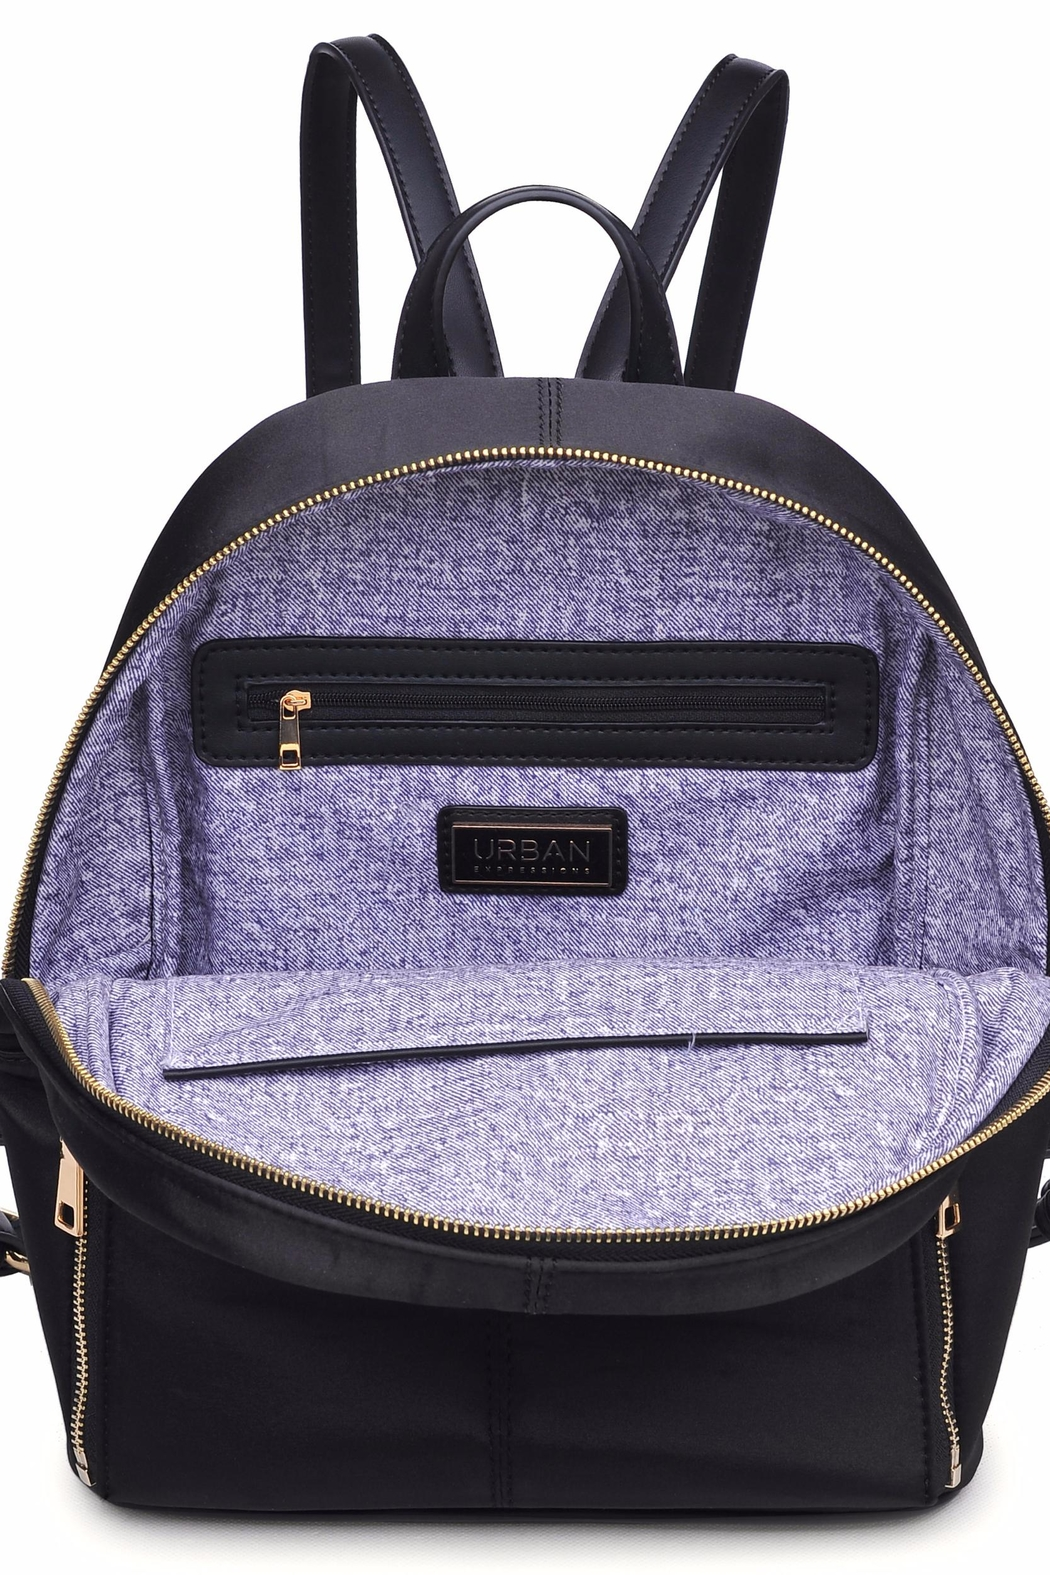 Urban Expressions Rio Embroidered Backpack - Back Cropped Image